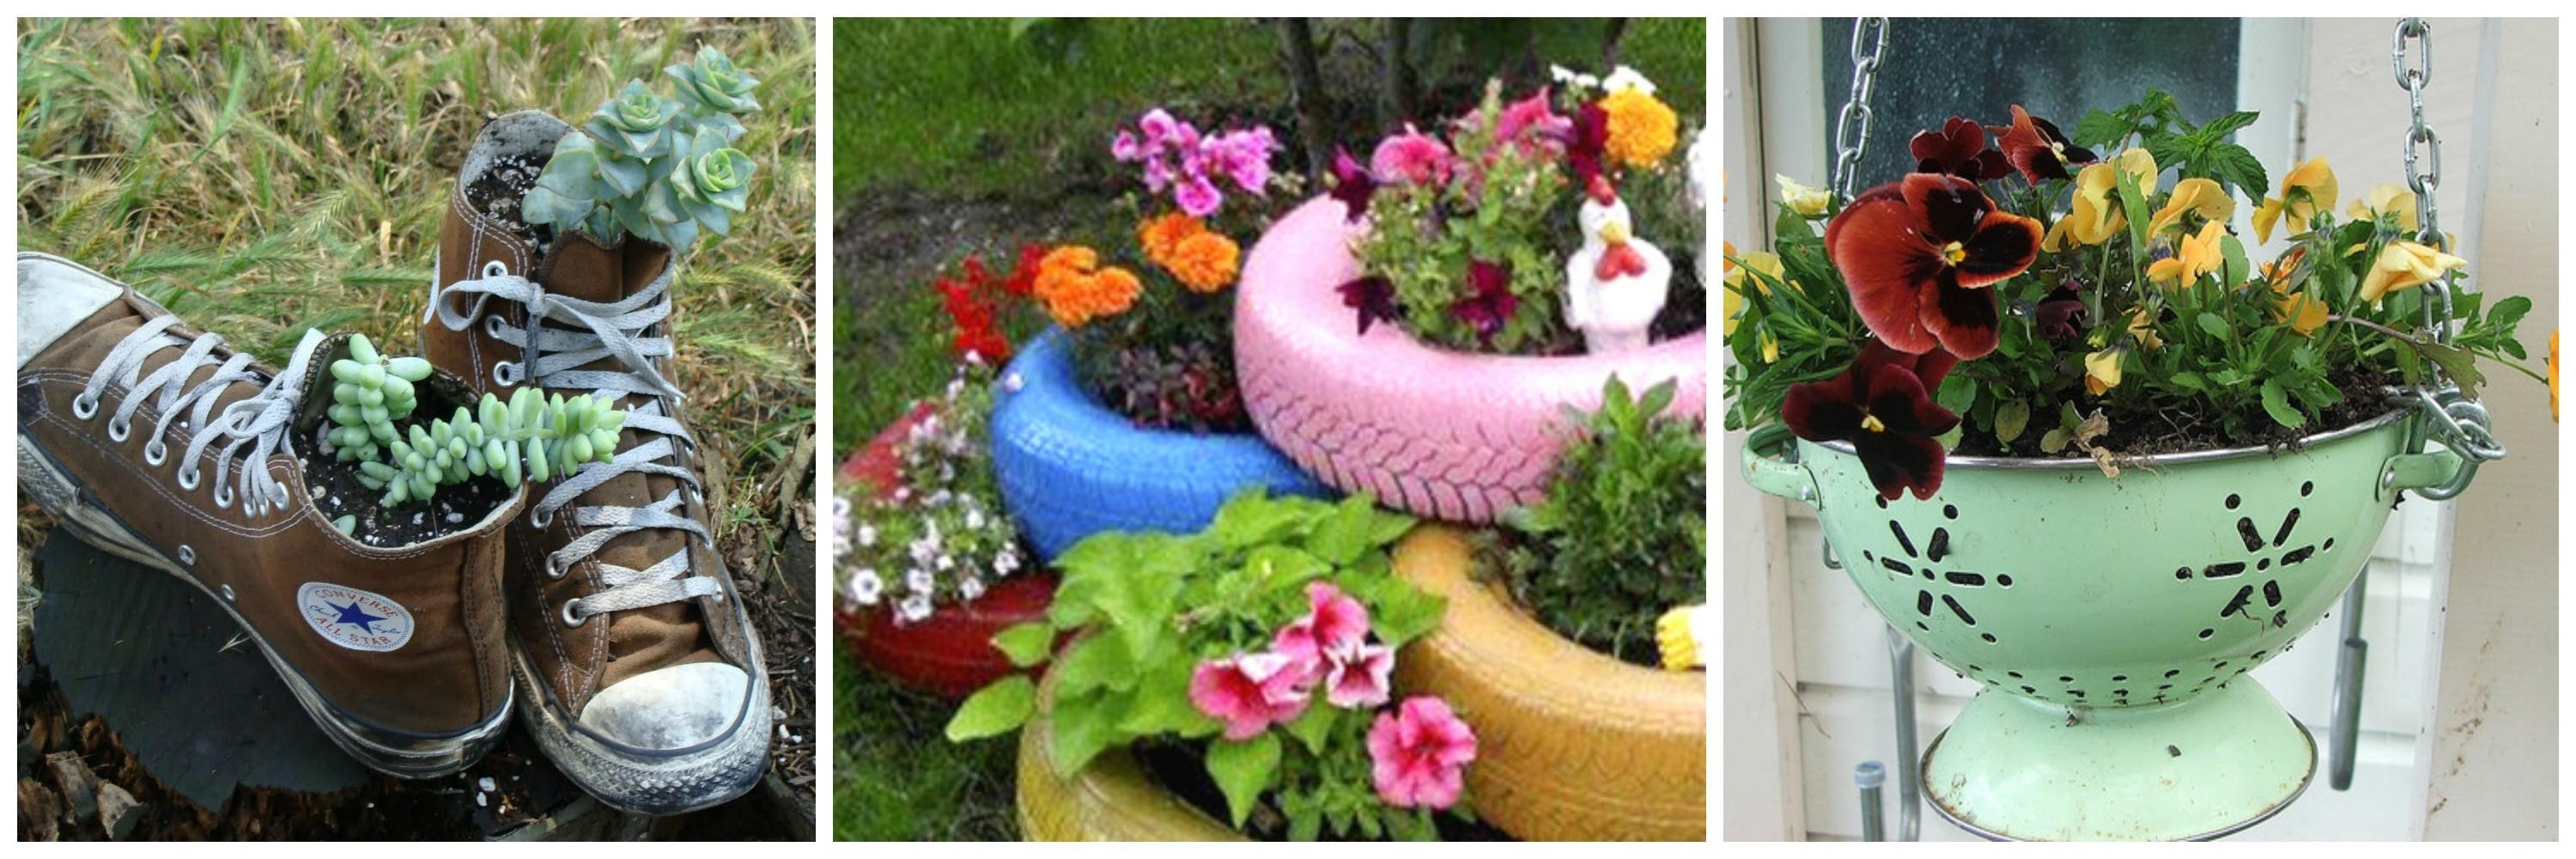 Diy Urban Gardening Projects Small Spaces